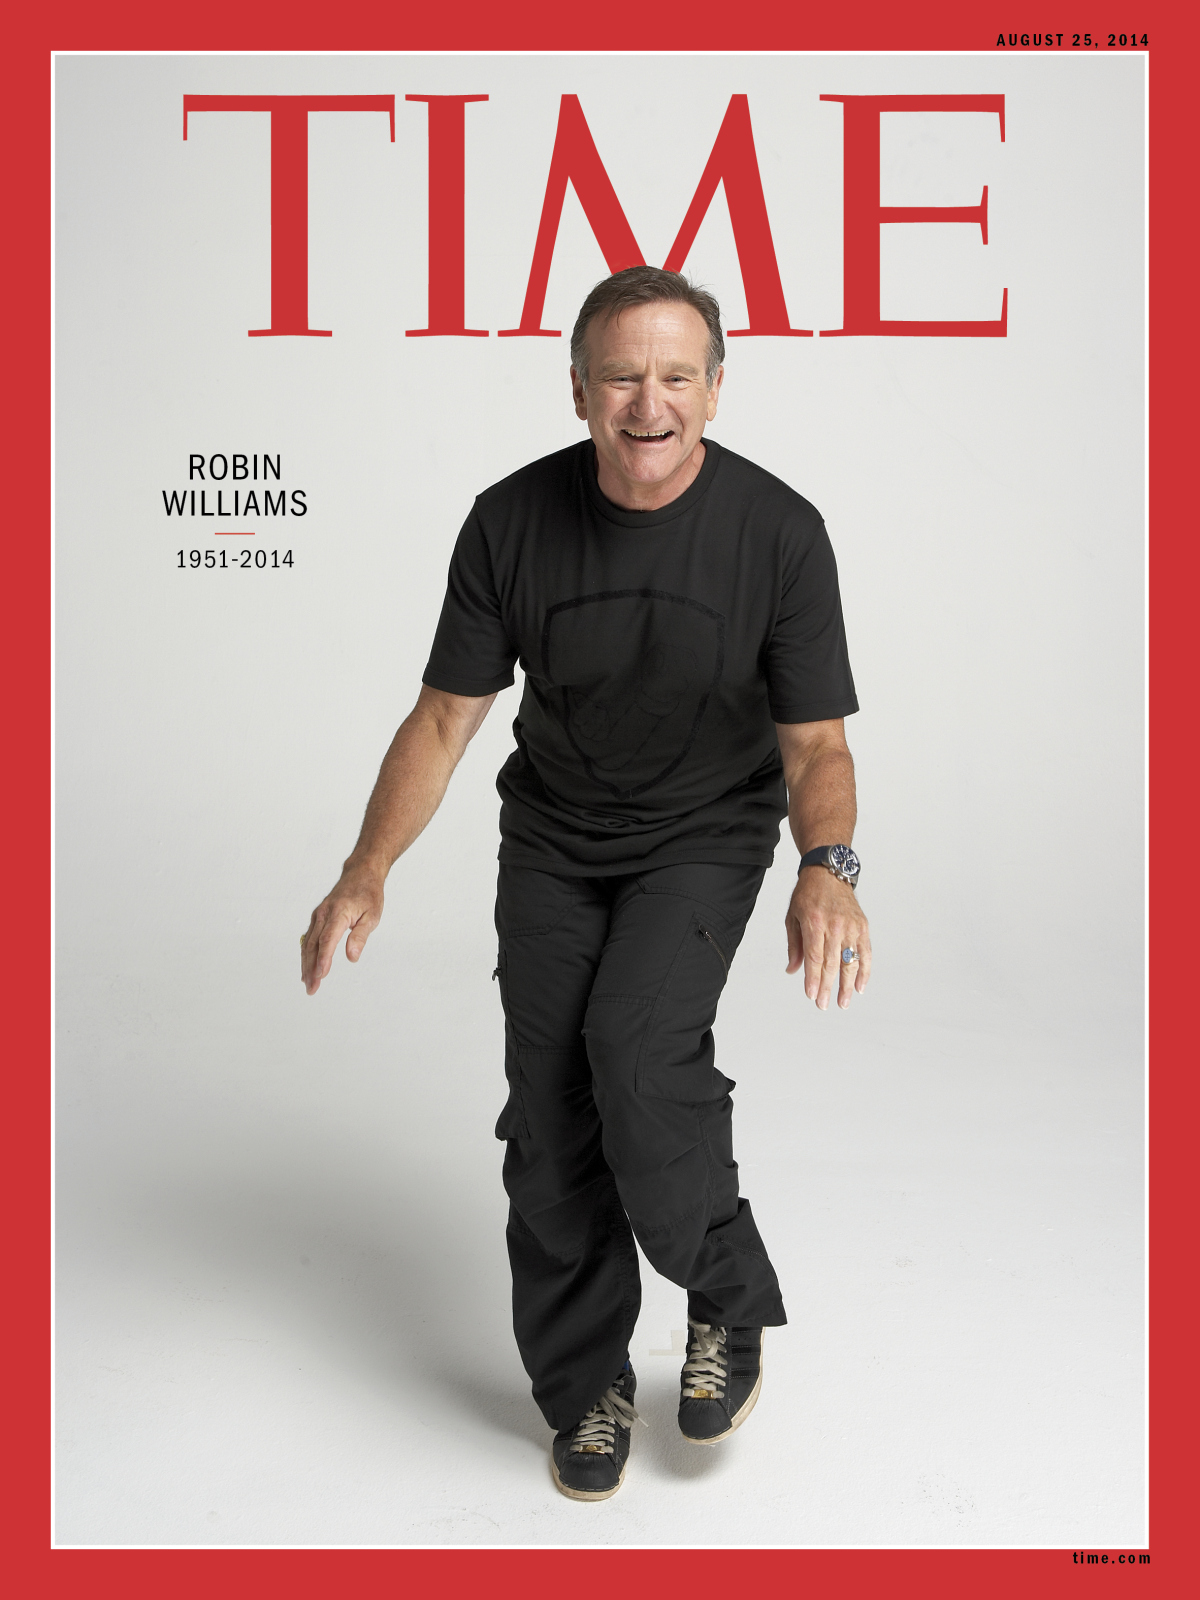 Time Magazine – The Last Editorial